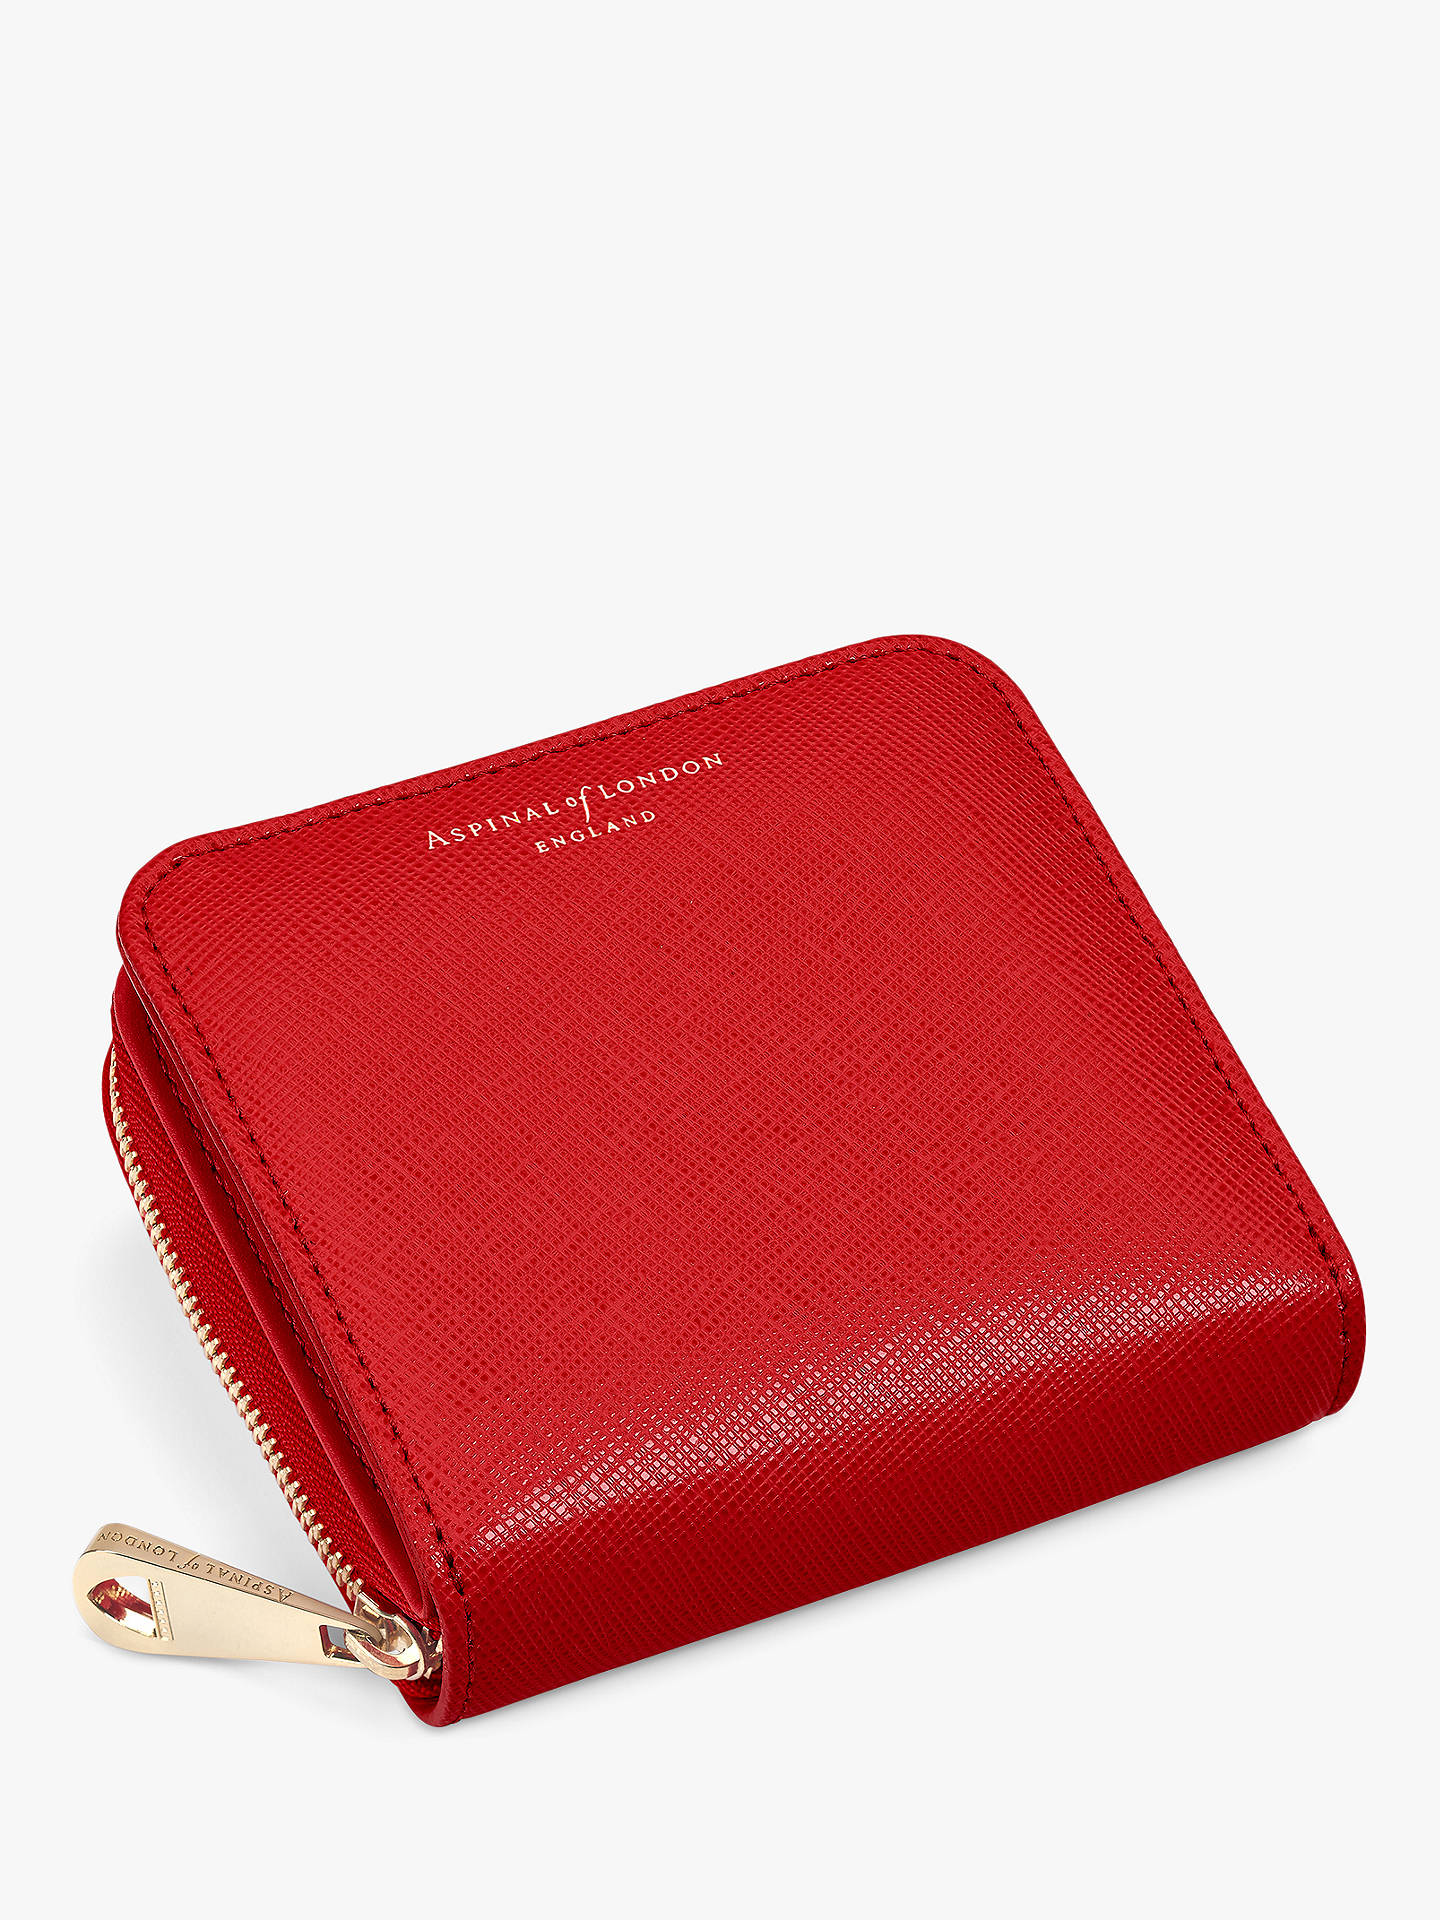 BuyAspinal of London Leather Continental Mini Purse, Scarlett Online at johnlewis.com